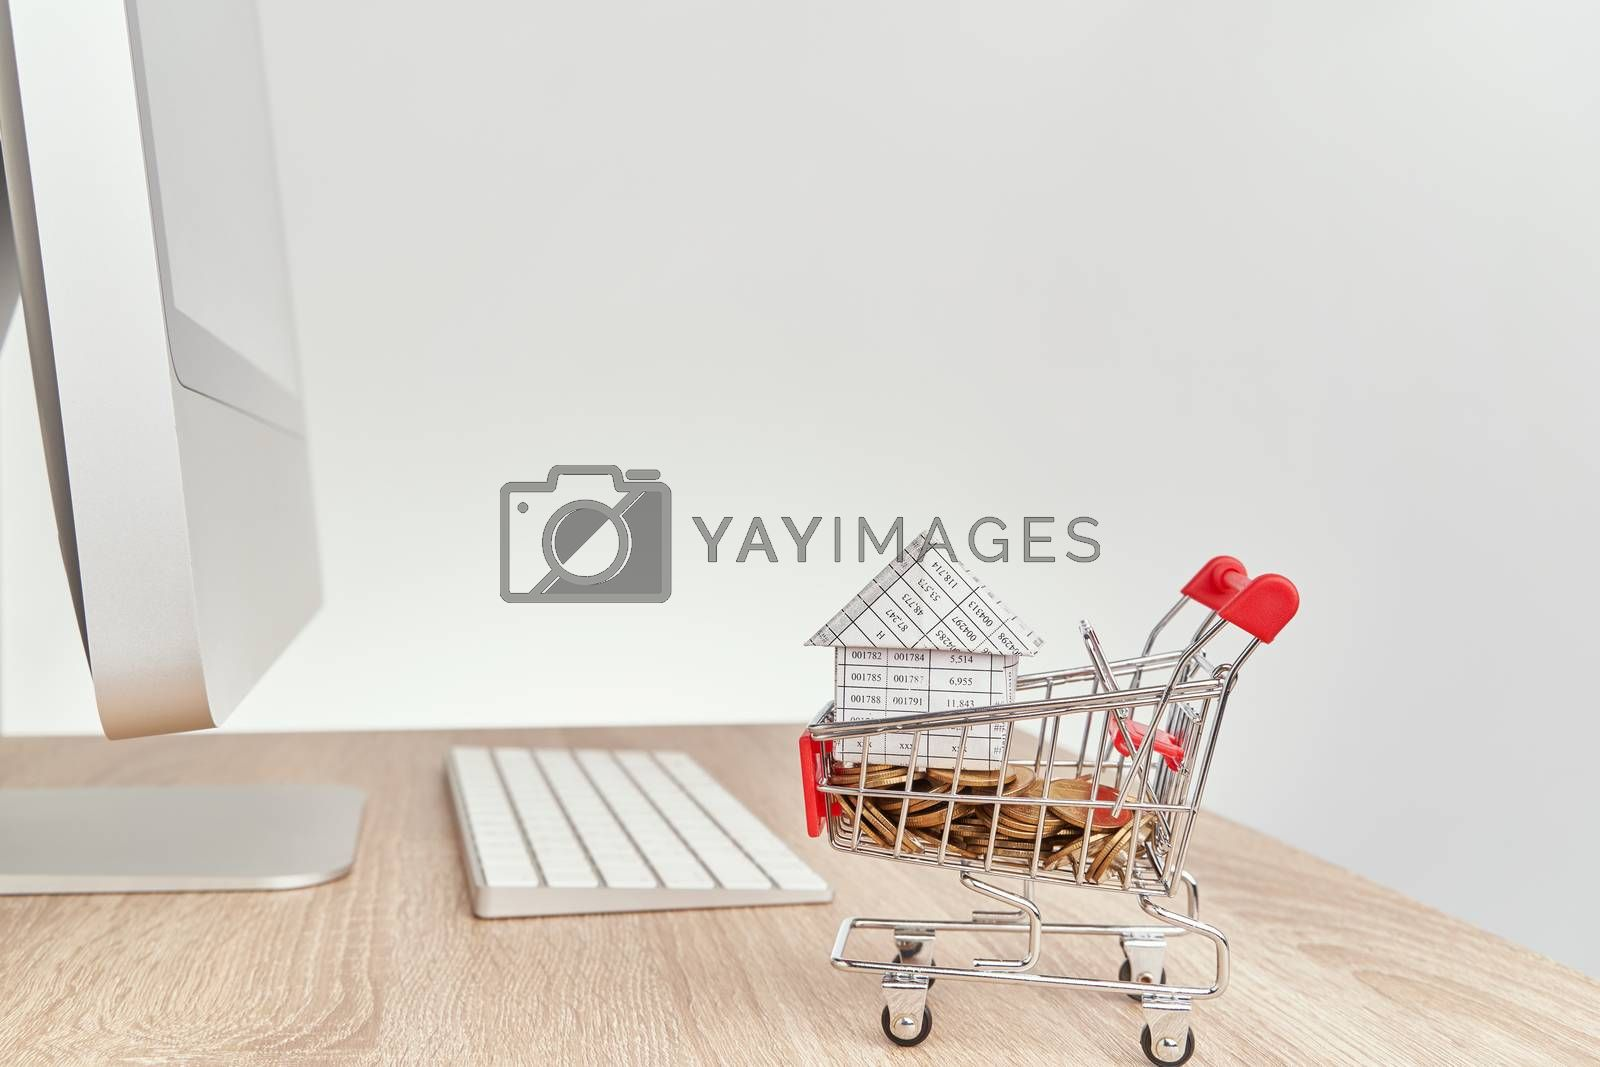 Royalty free image of House gold coins in shopping cart on wooden computer table by eaglesky